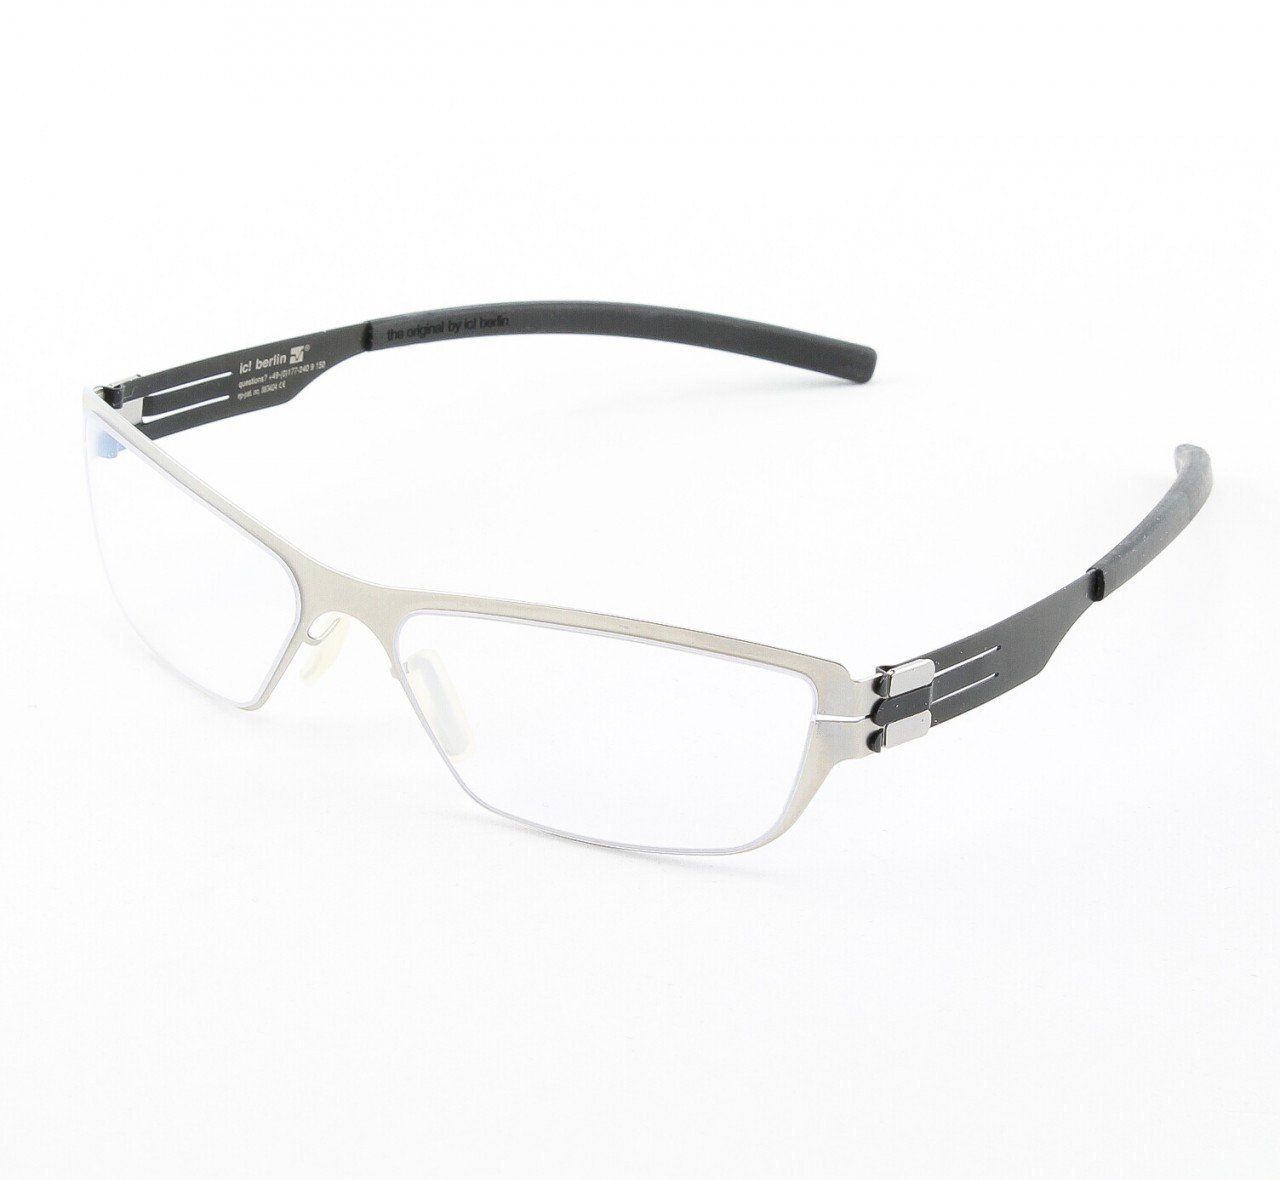 ic! Berlin Uncertainty Principle Eyeglasses Col. Black / Silver with Clear Lenses